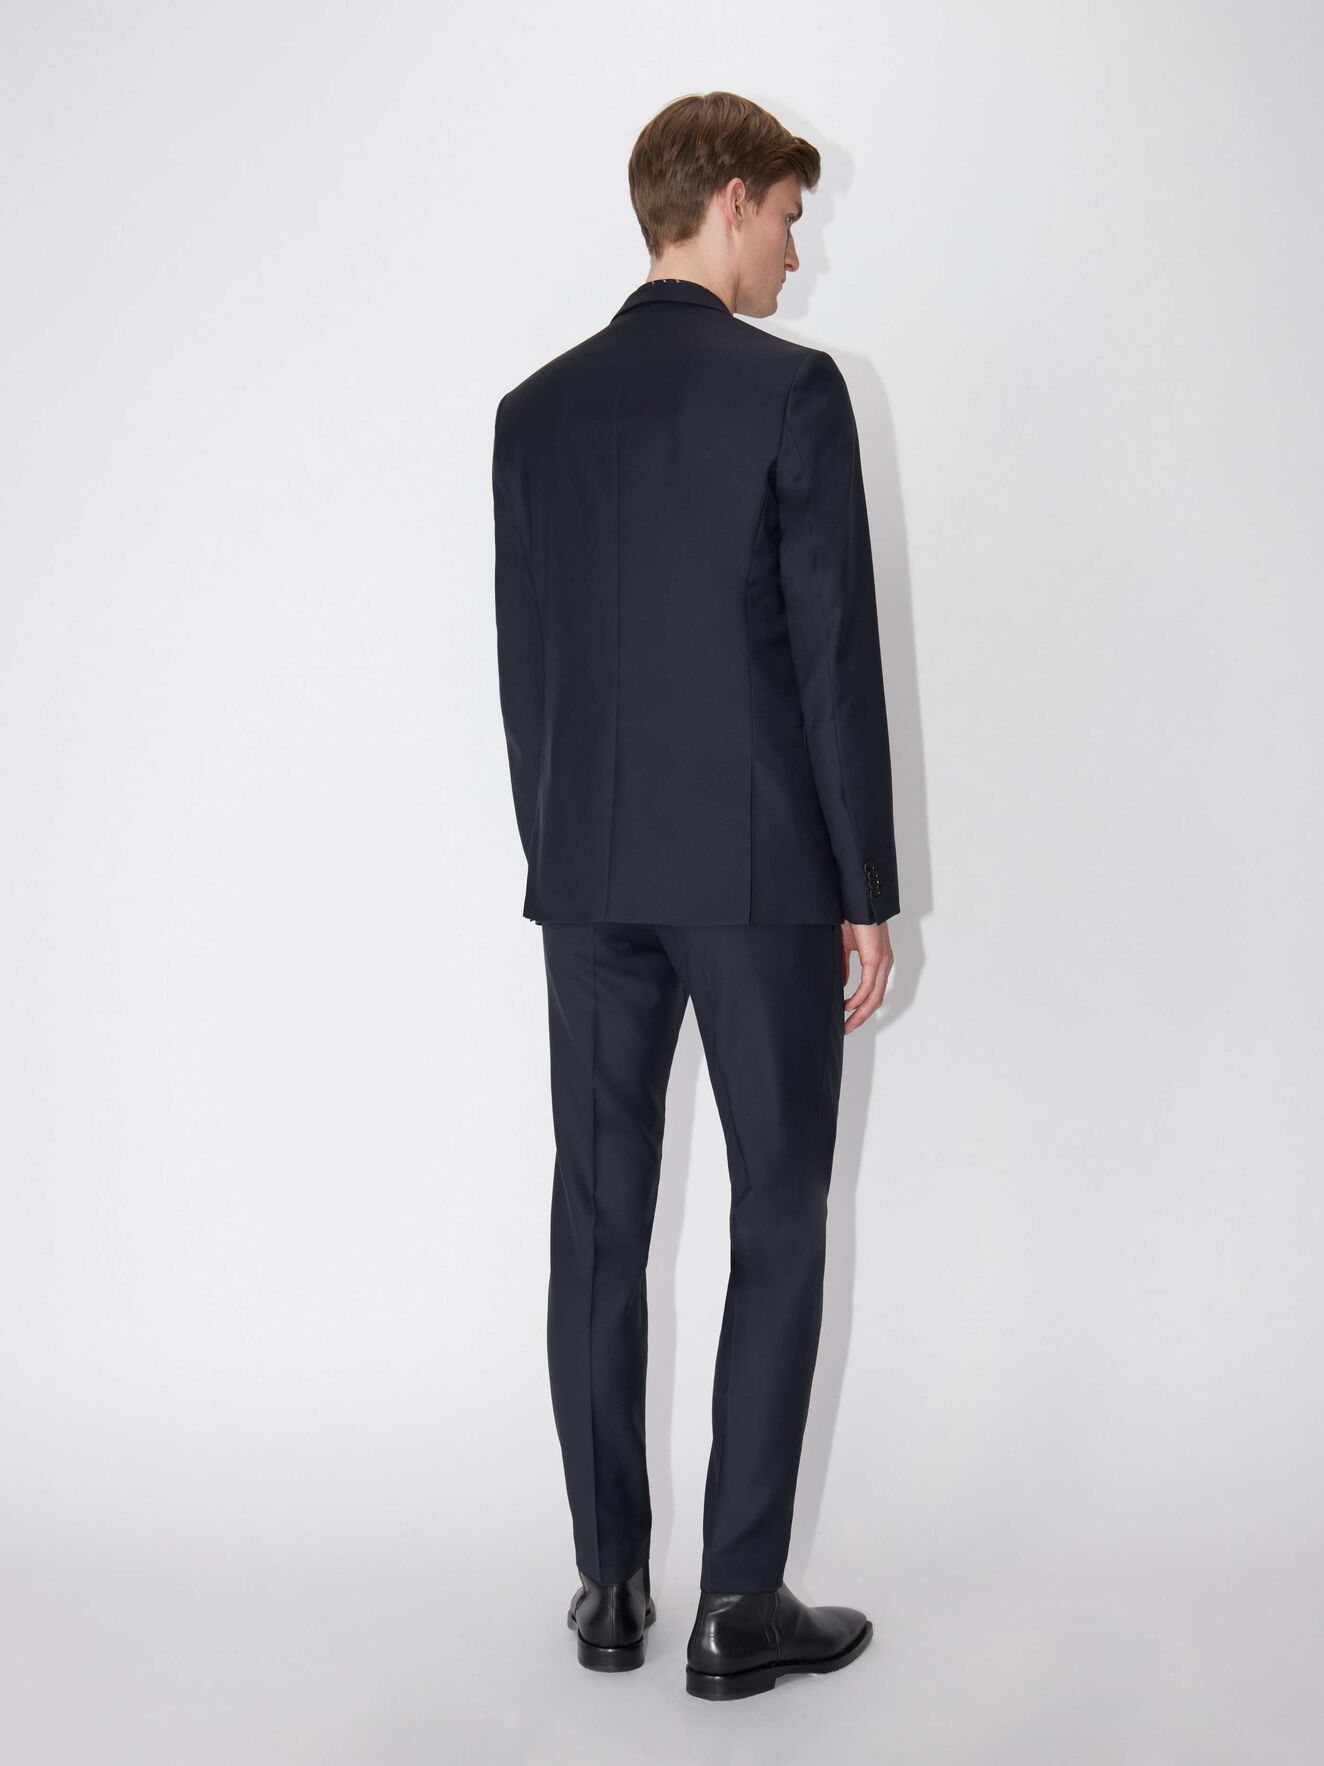 Tain Trousers in Light Ink from Tiger of Sweden